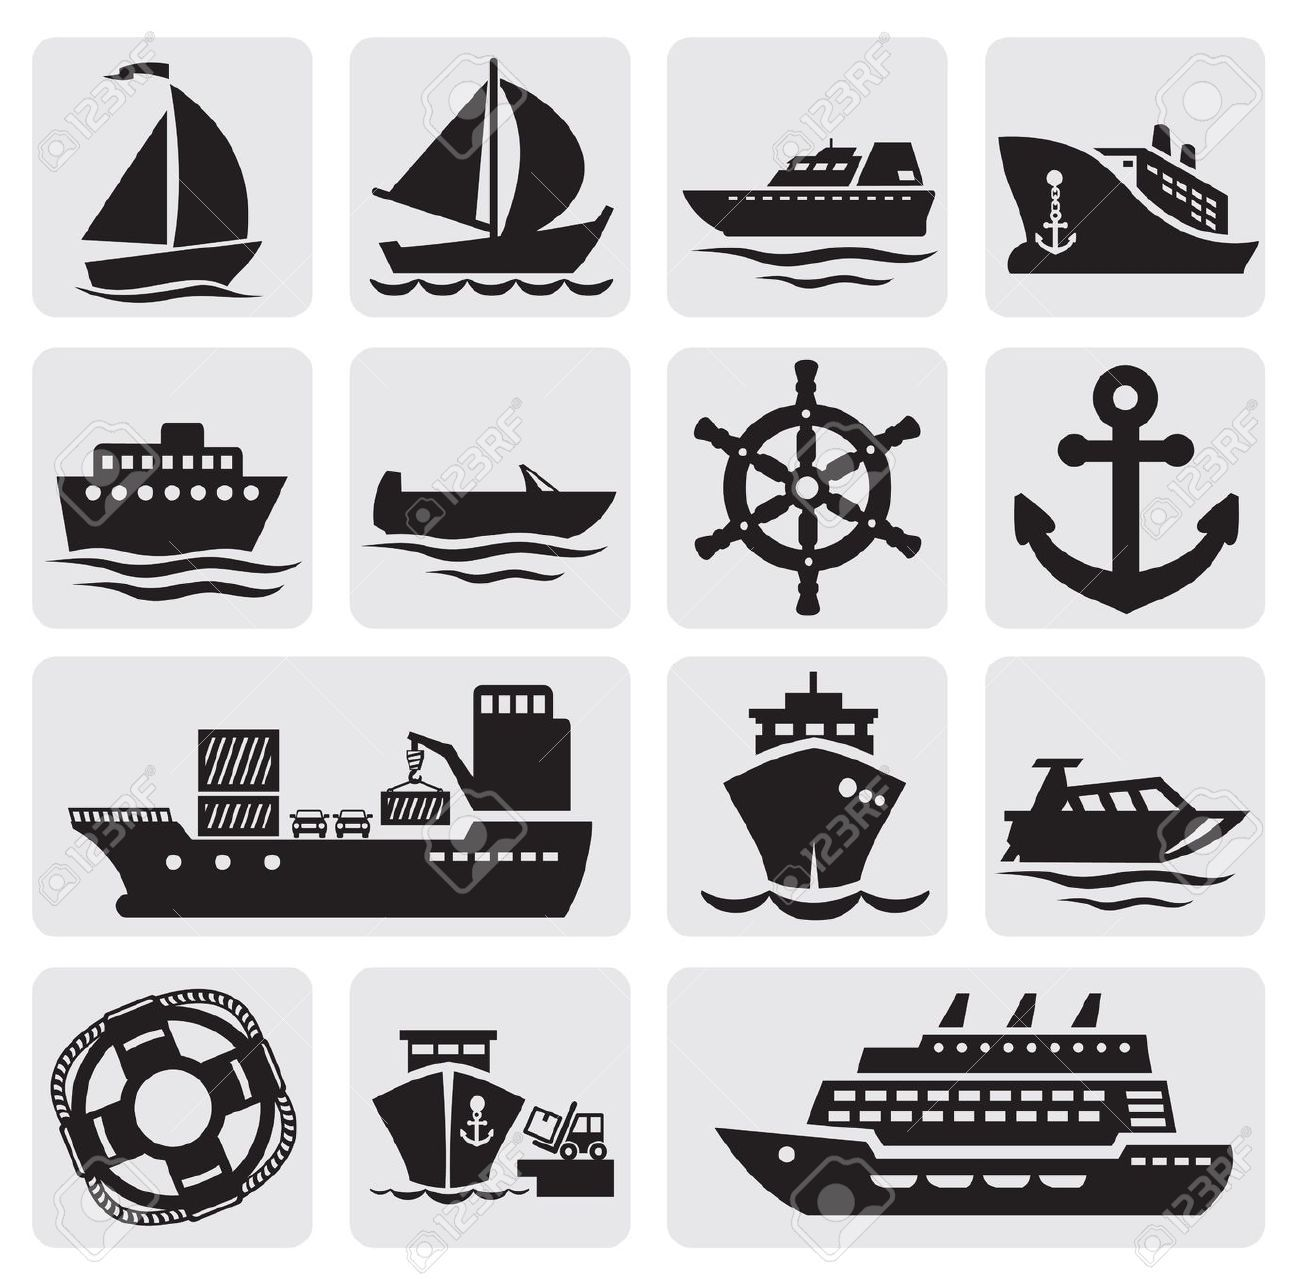 Boat And Ship Icons Set Royalty Free Cliparts, Vectors, And Stock ...